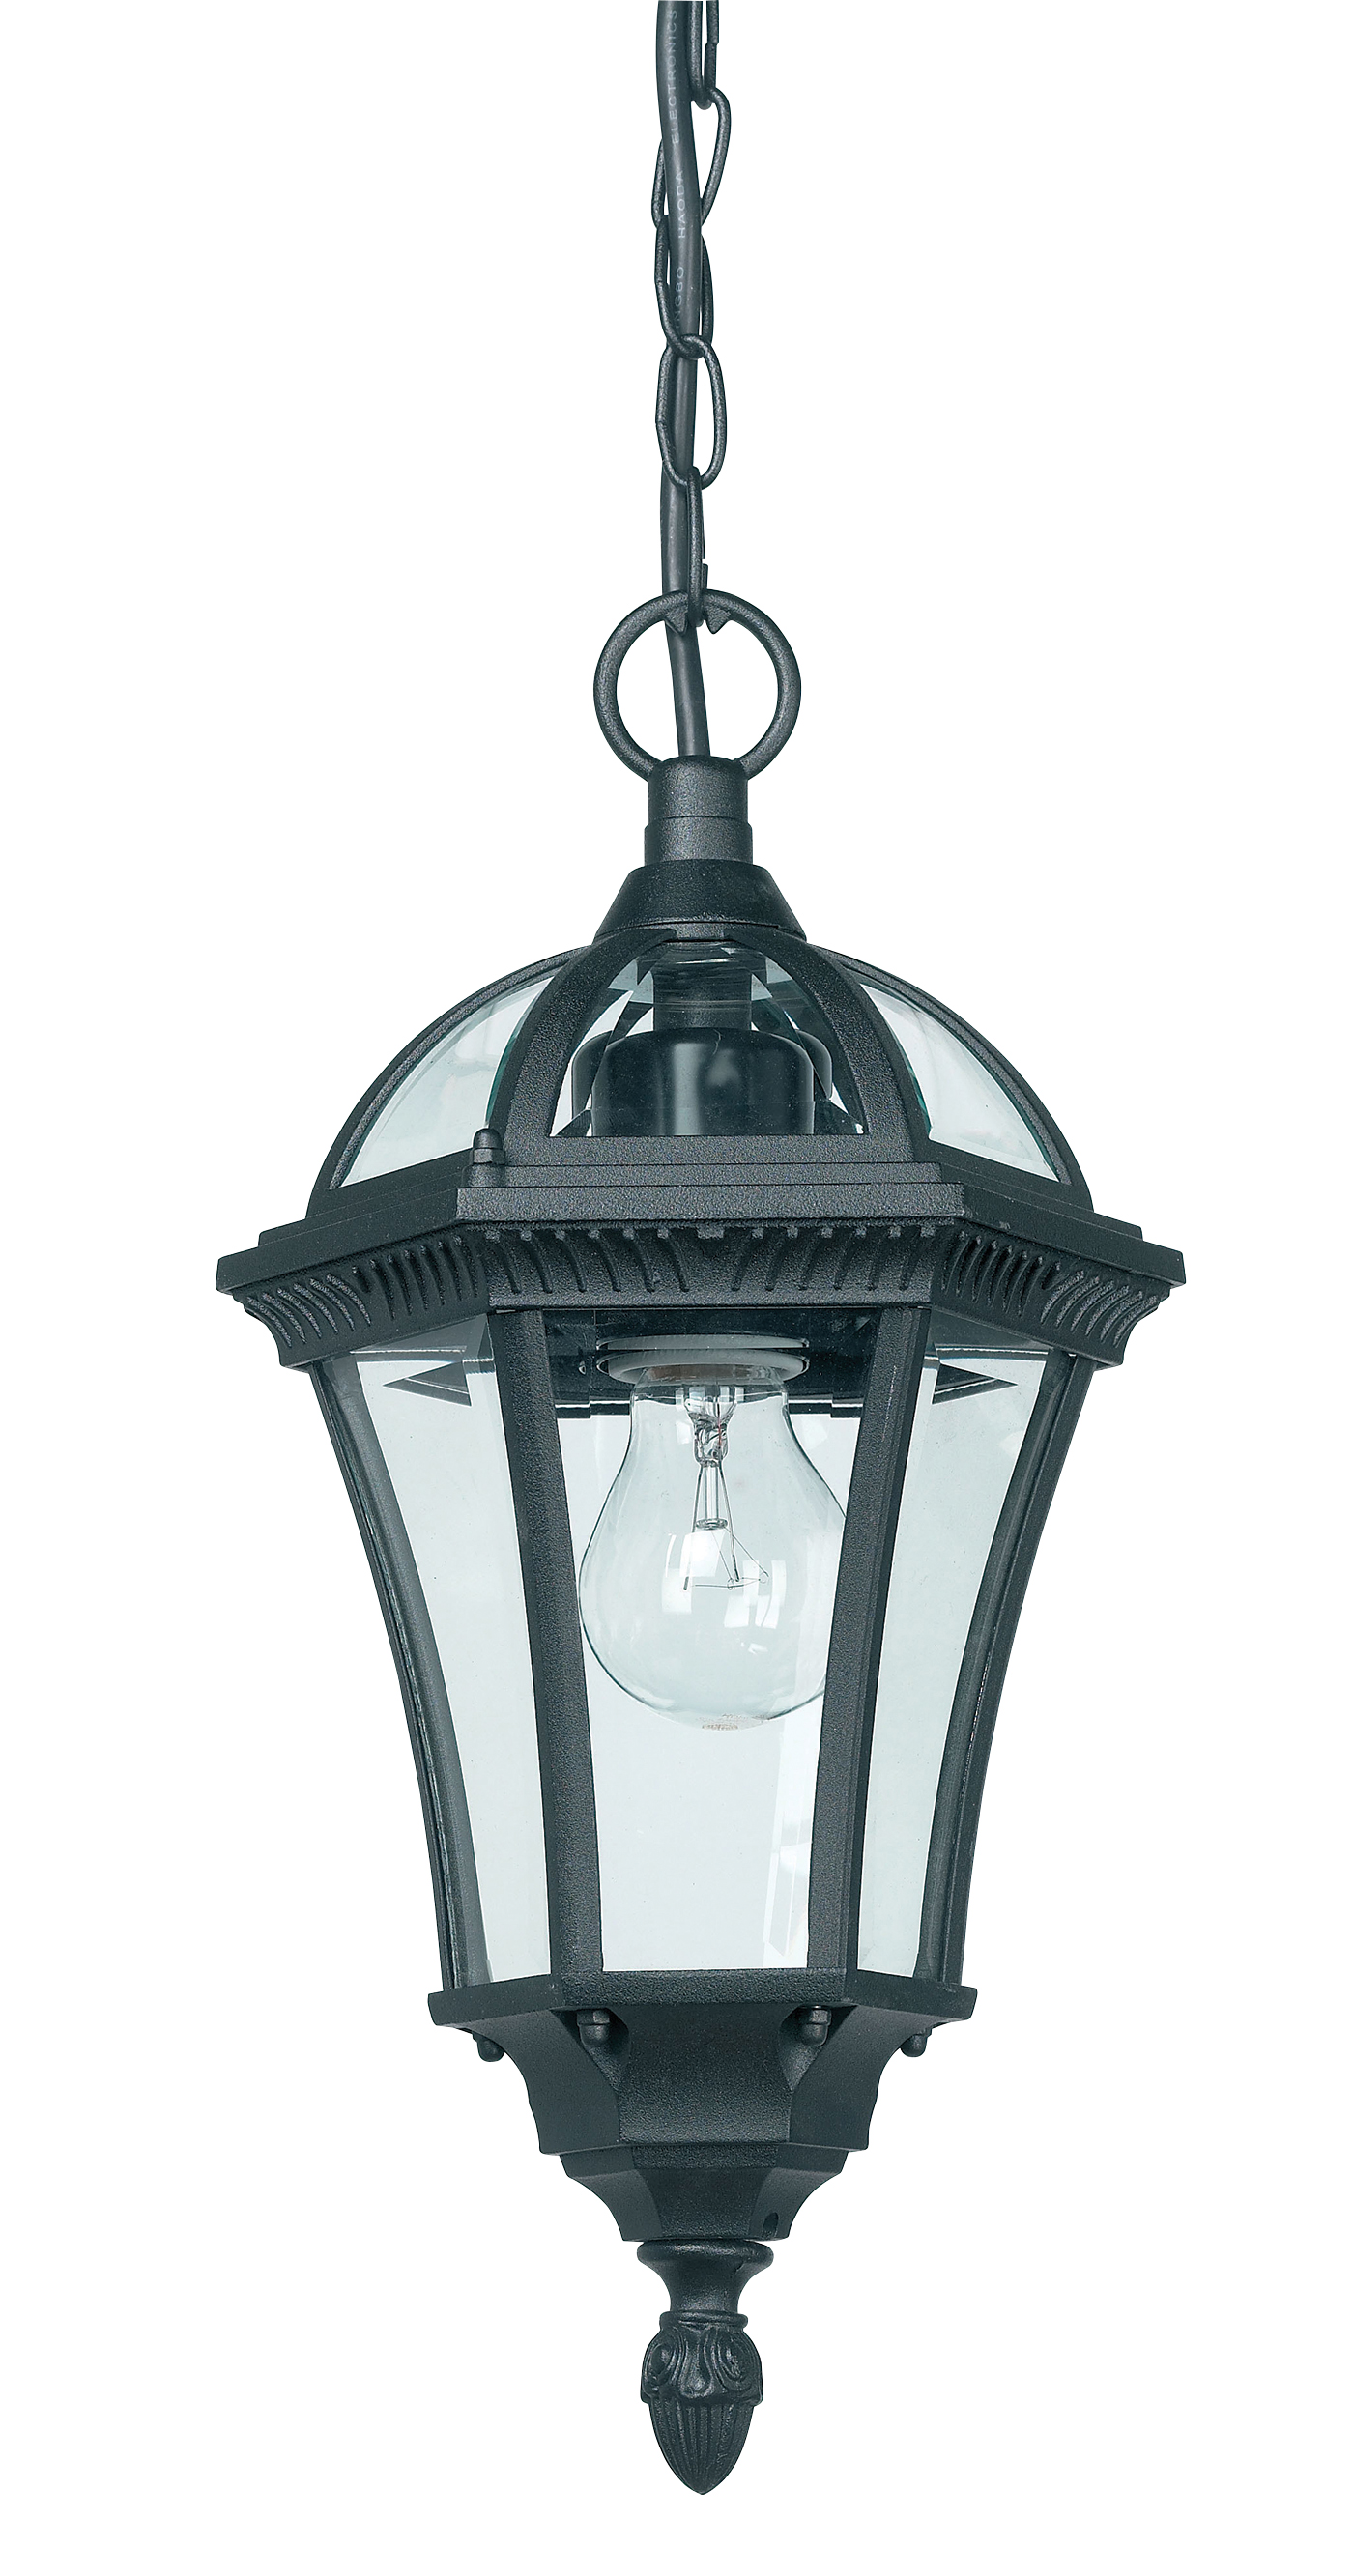 endon ip44 drayton outdoor pendant light ip44 60w textured black clear glass liminaires